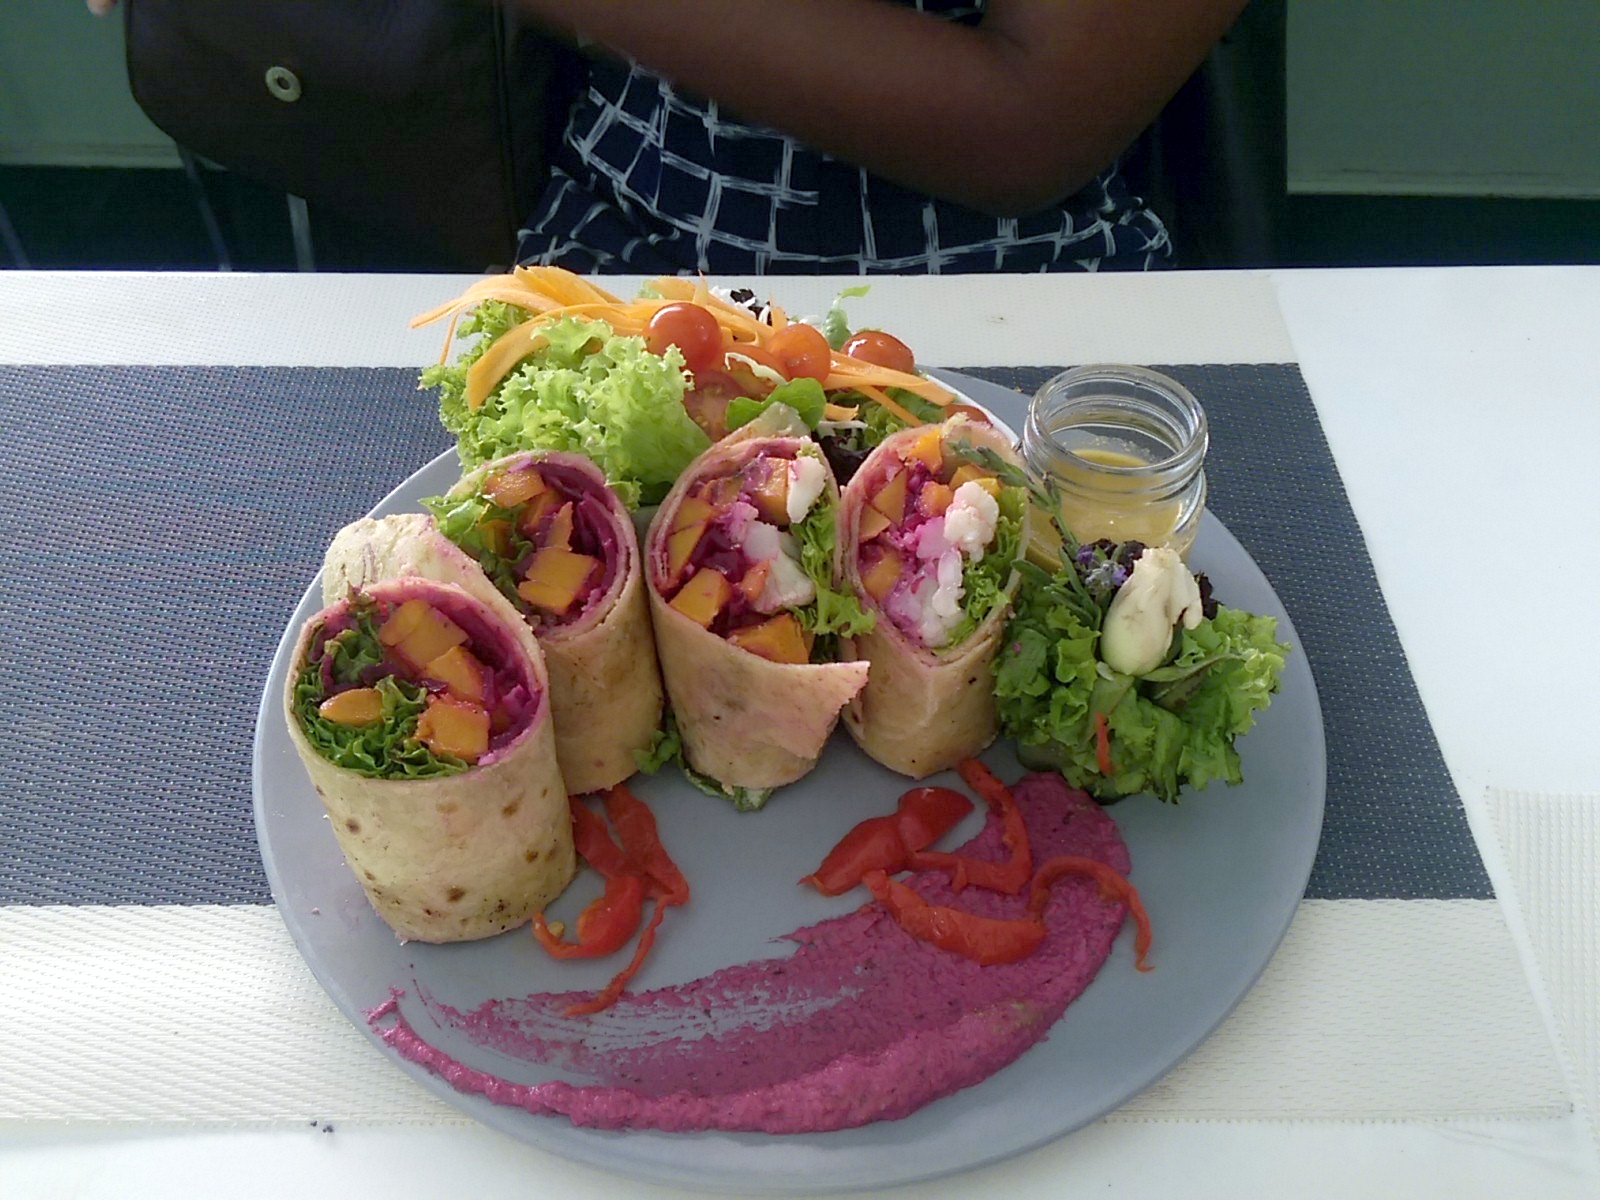 Four small tortillas standing on end filled with vegetables on a plate with salad